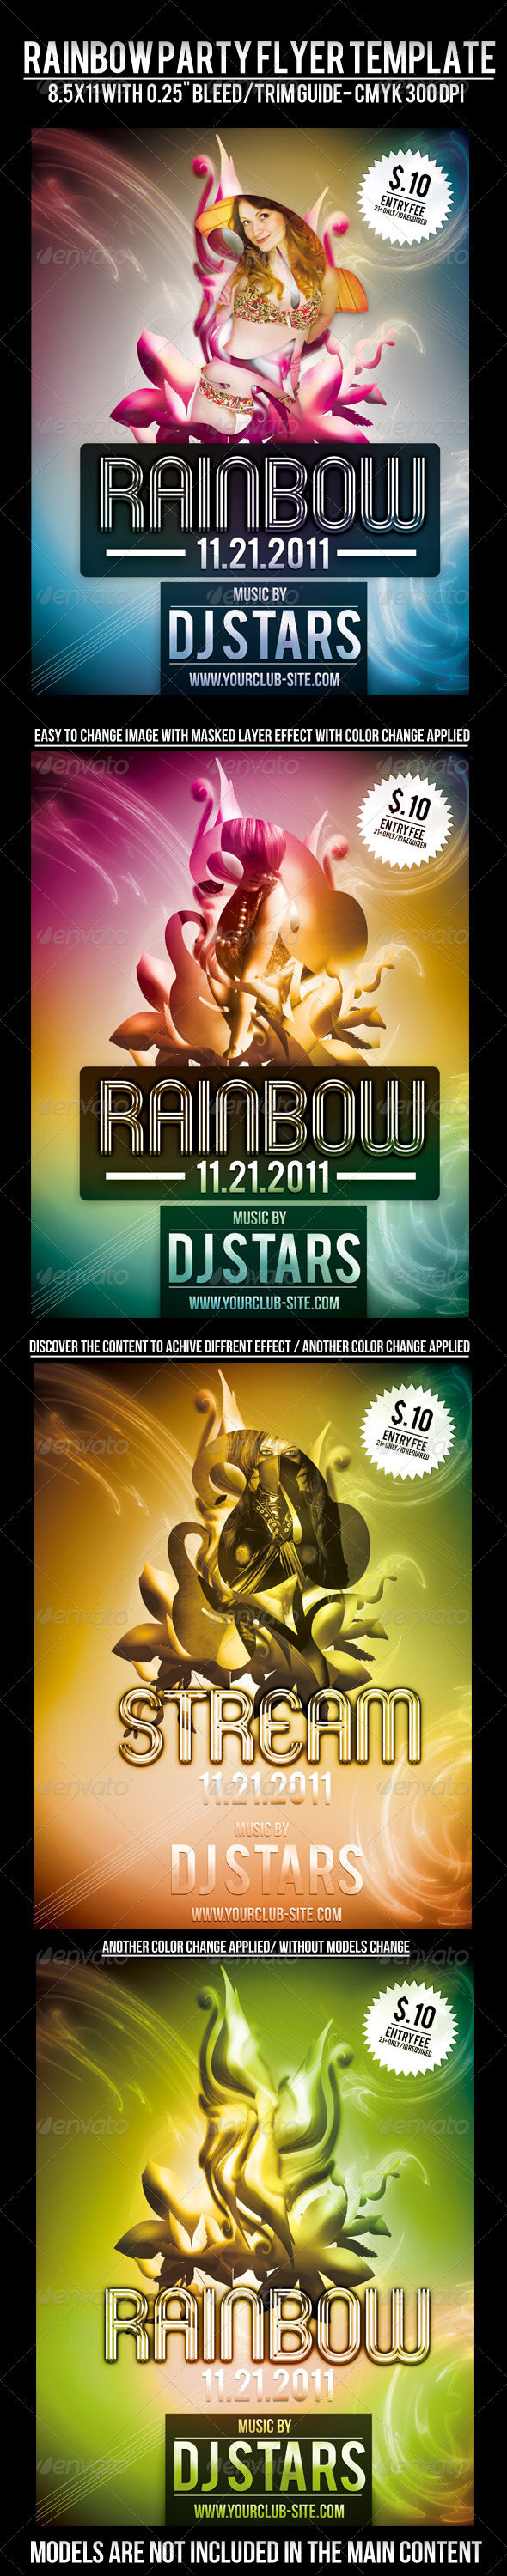 Rainbow Party Flyer Template - Clubs & Parties Events